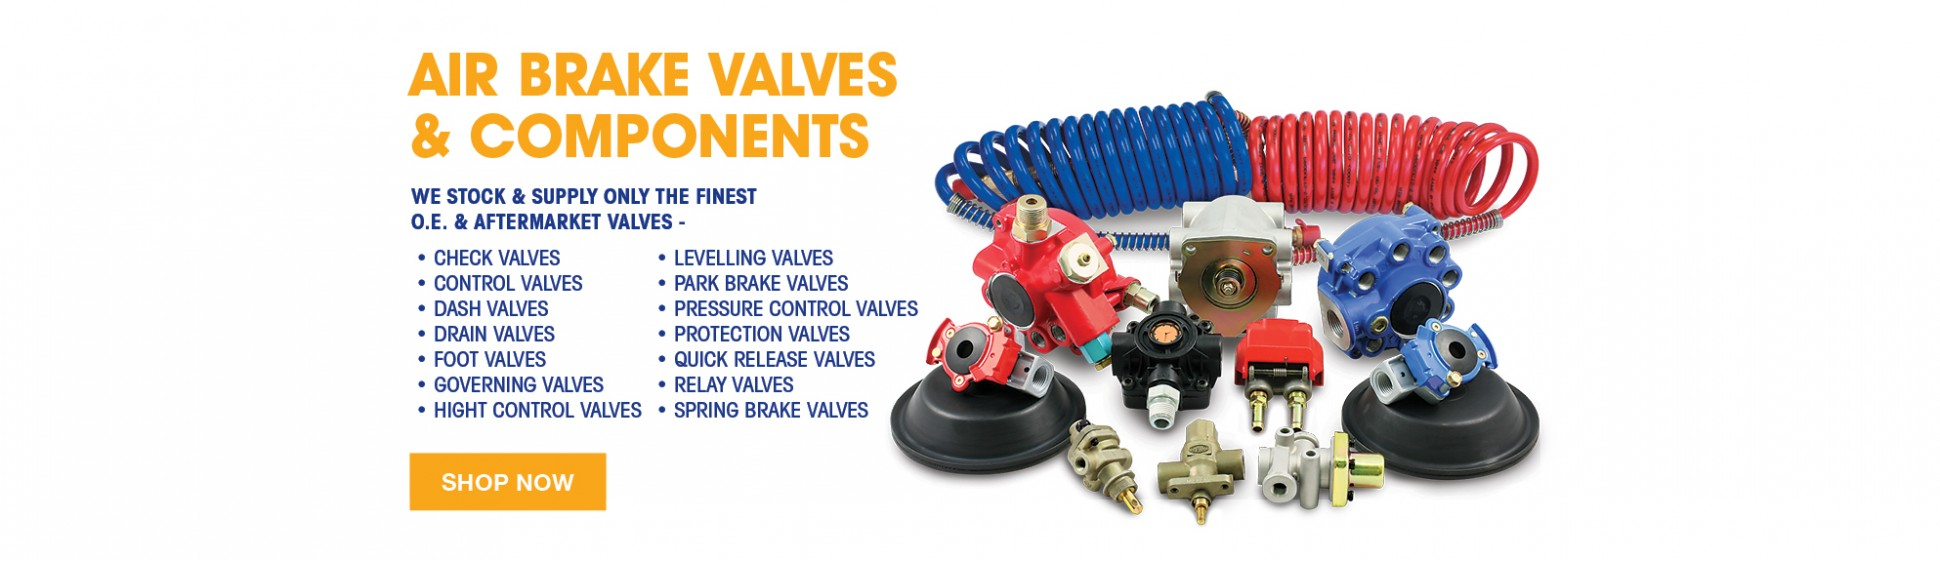 Trailer Air Brake Valves Components